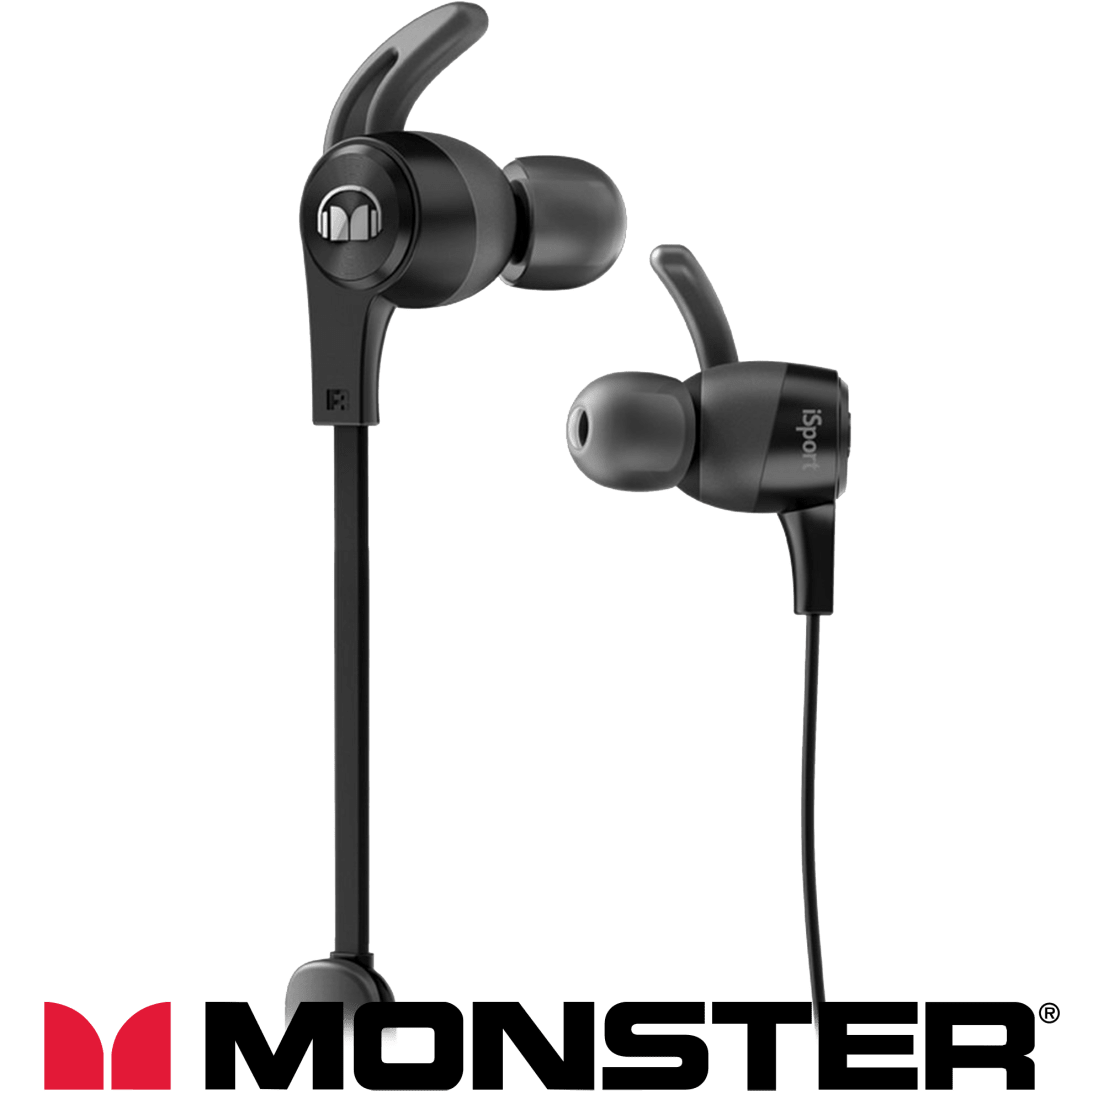 8bb8d1a7204 Monster iSport Sweatproof In-Ear Bluetooth Earbuds (Certified Refurbished)